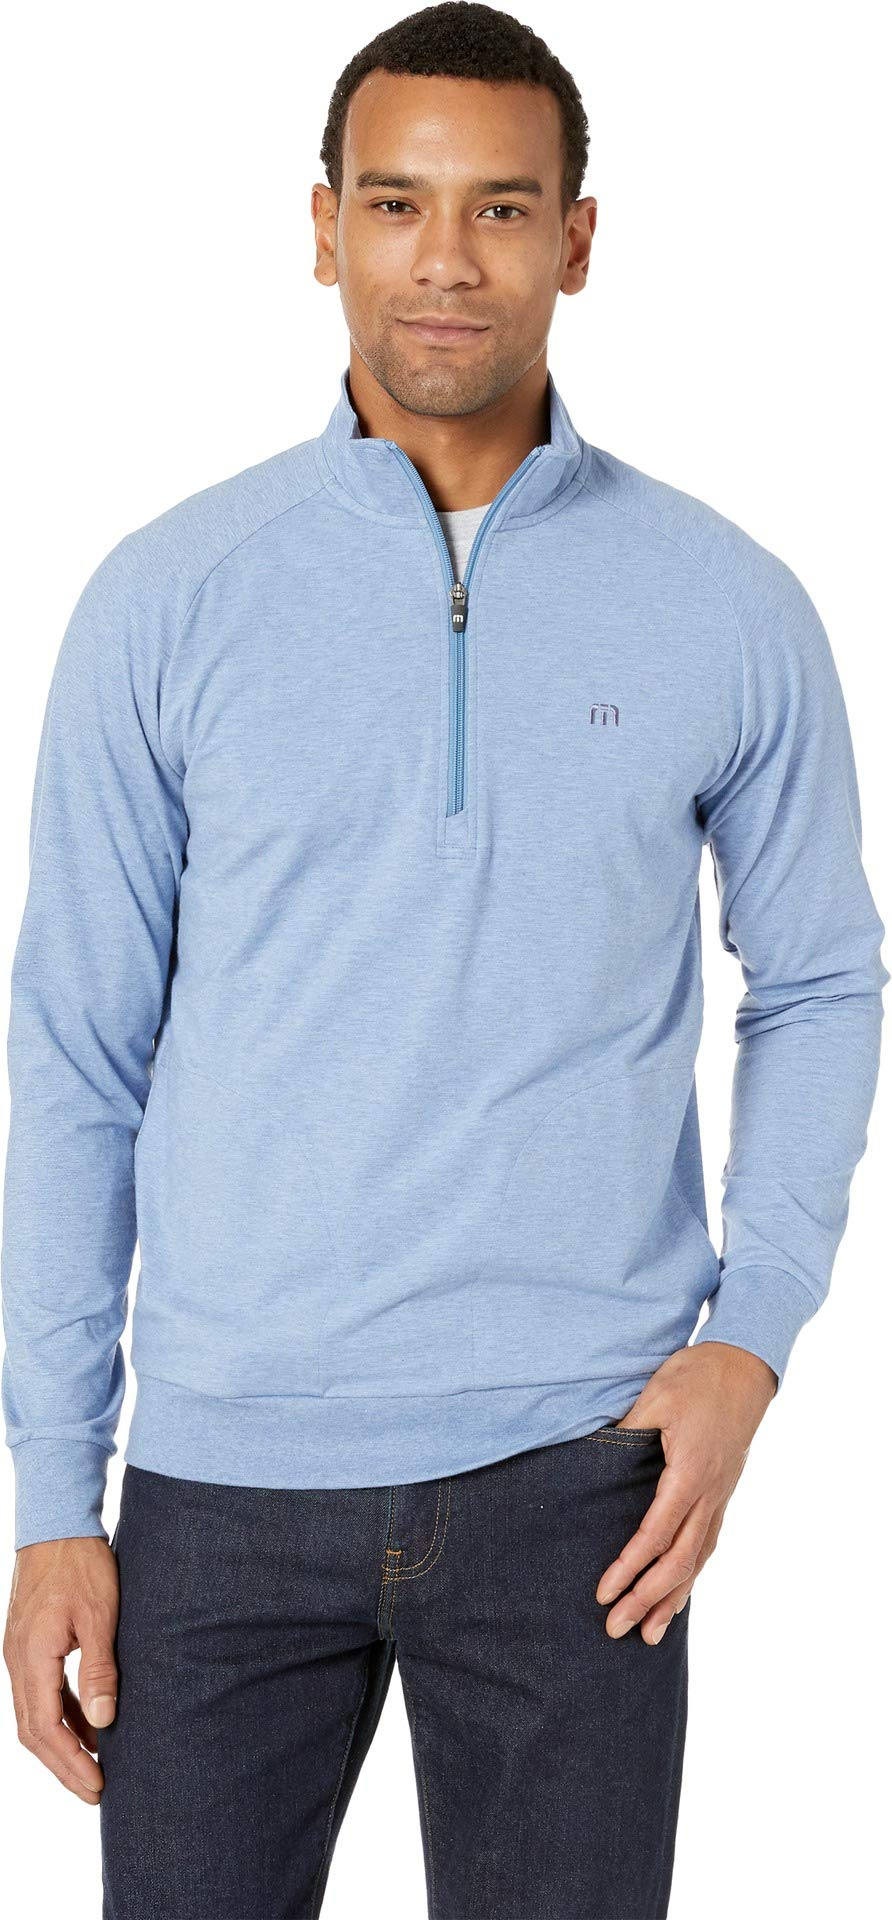 TravisMathew Men's Zachary Heather Light Blue Small by TravisMathew